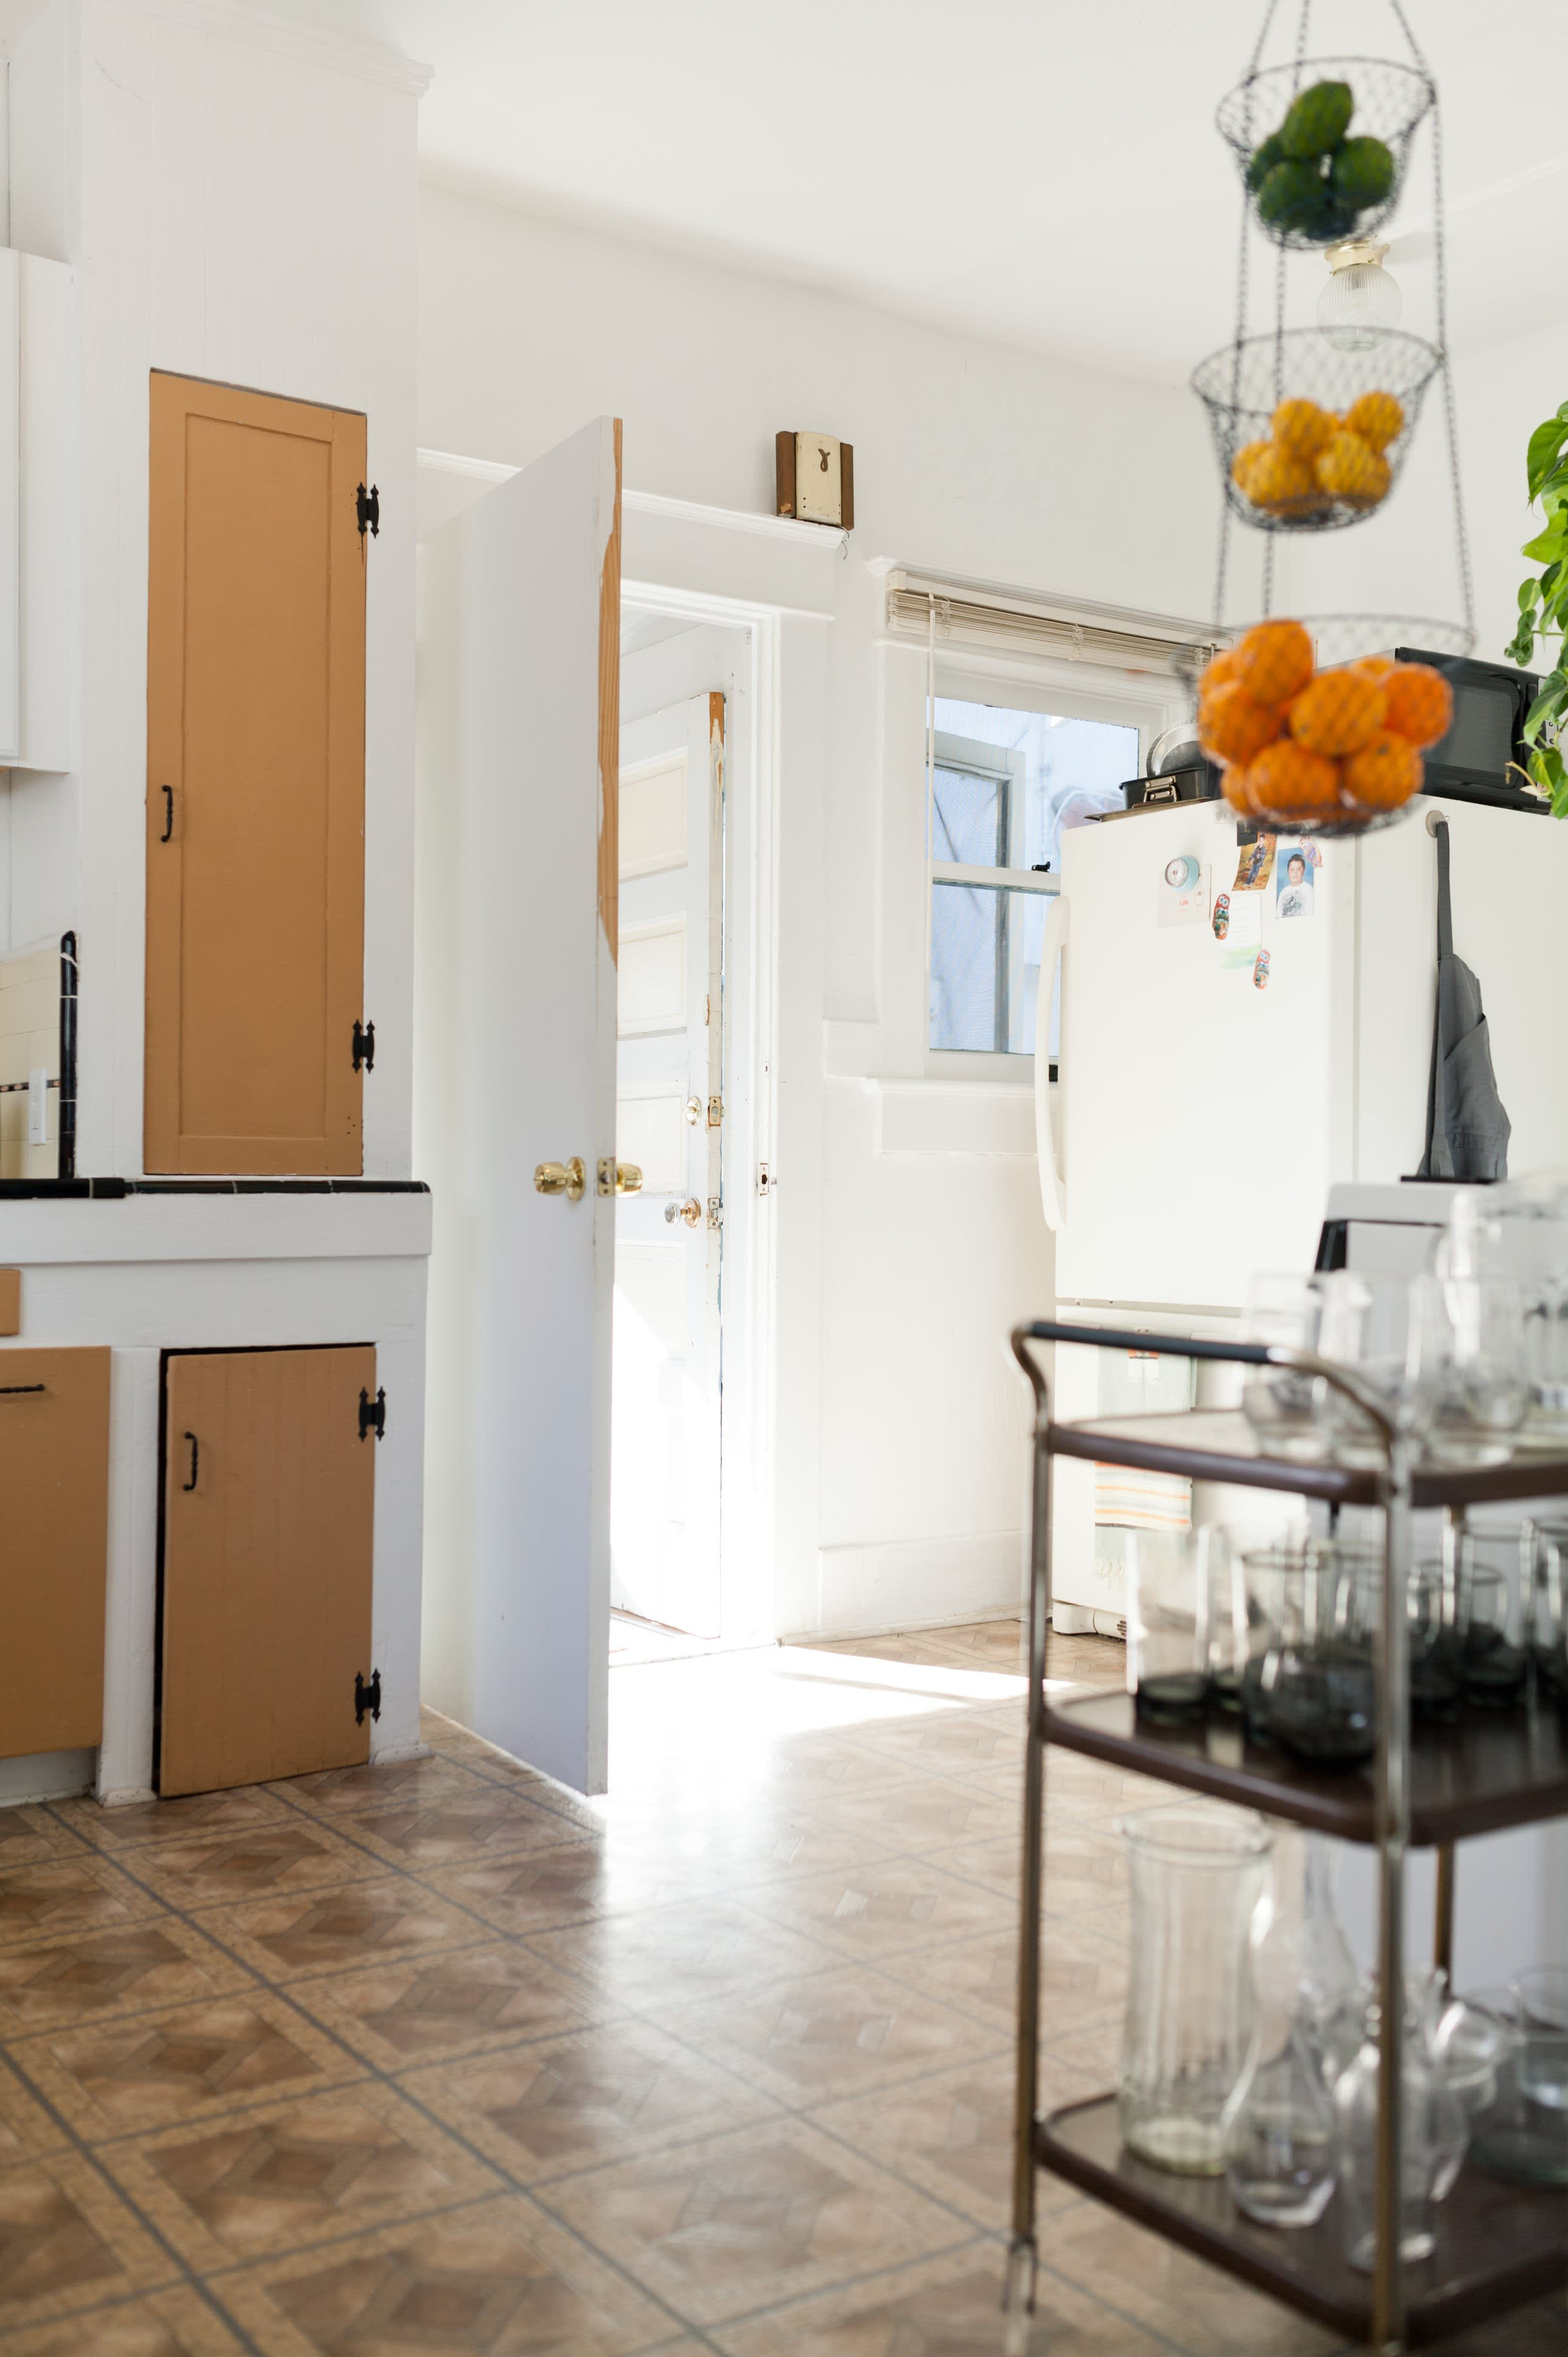 Where I Cook: Leather Craftsman Steven Soria's Rental Kitchen: gallery image 12